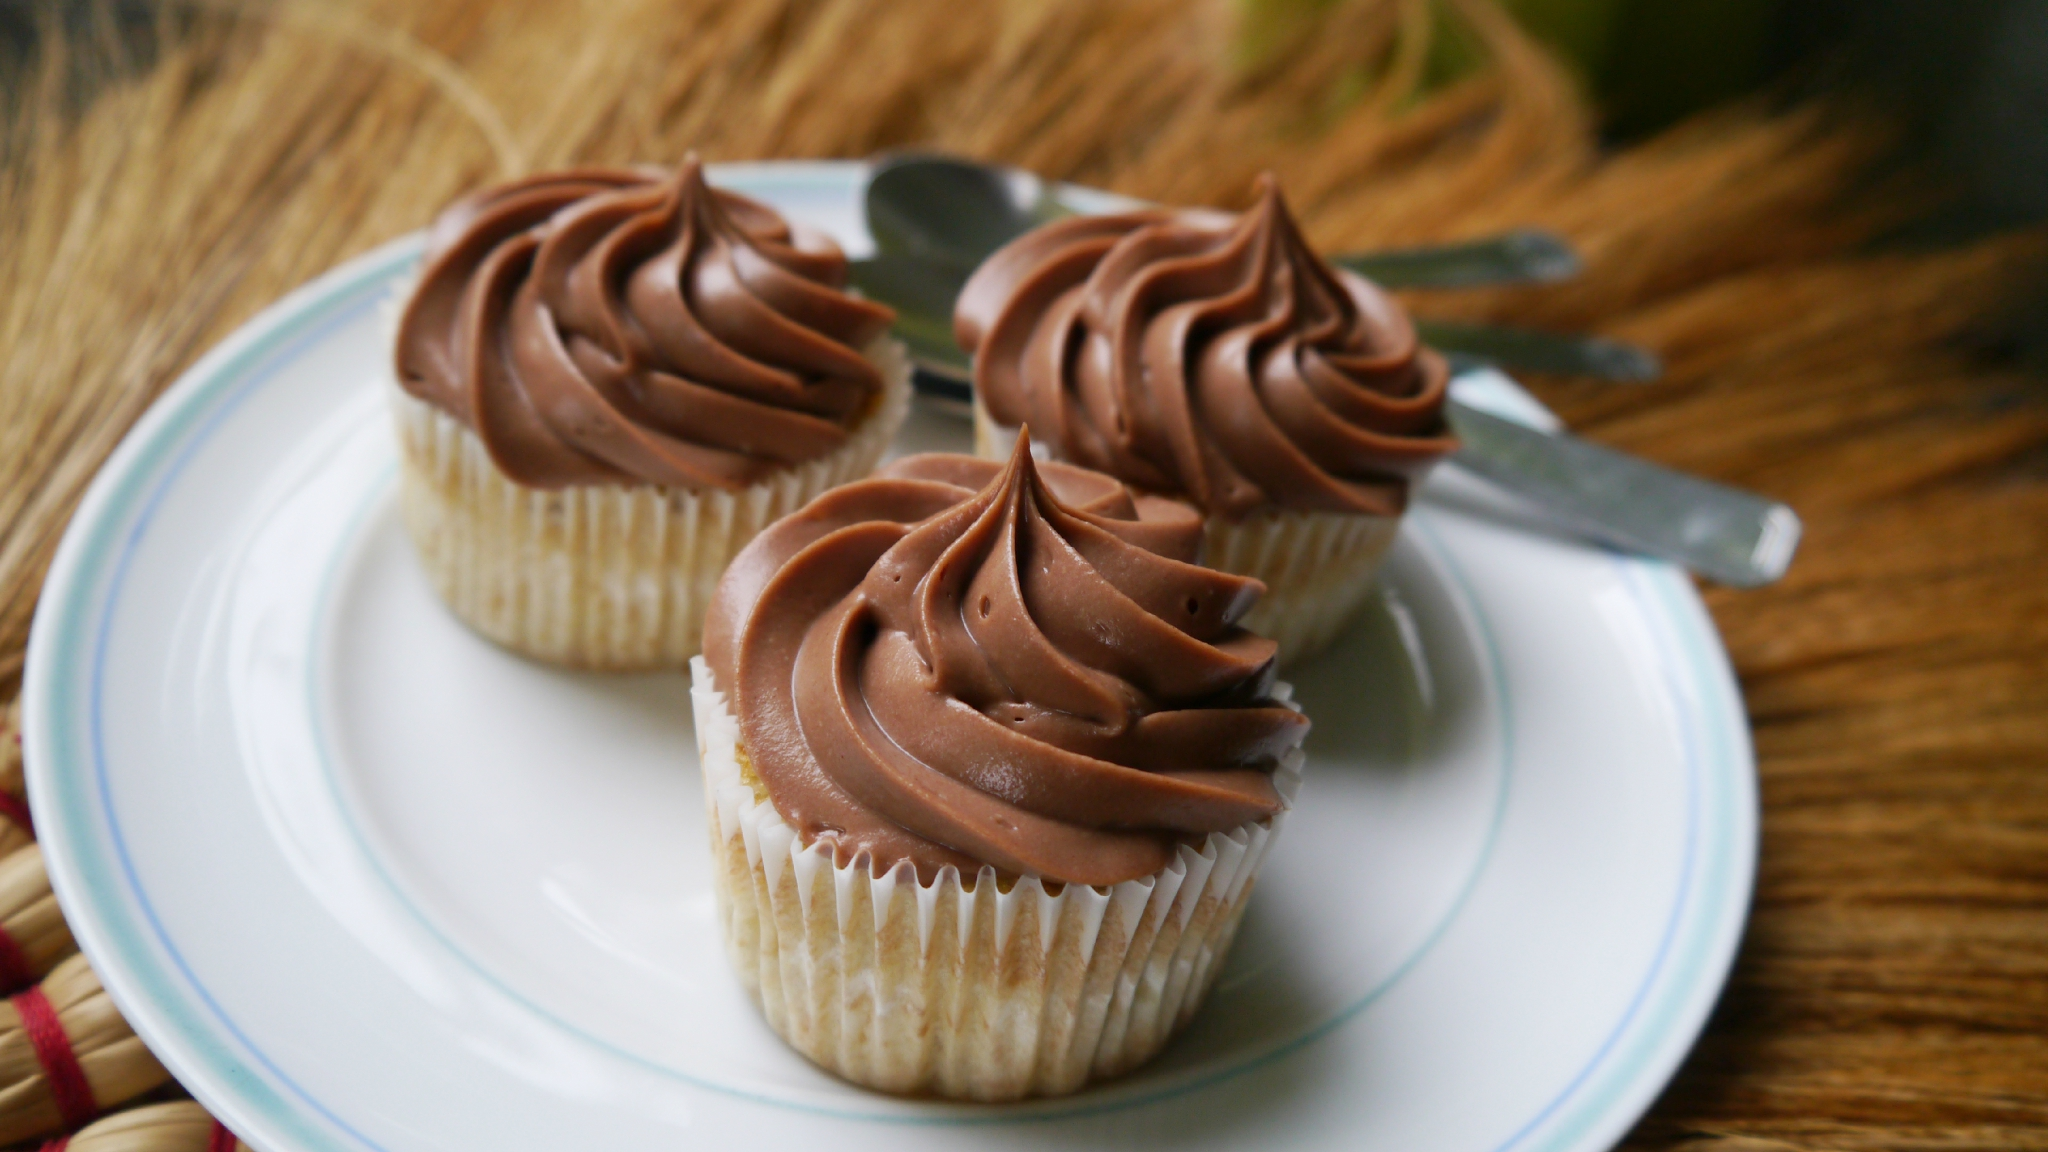 nutella cupcakes by cannella nutella cupcakes the cupcake with nutella ...